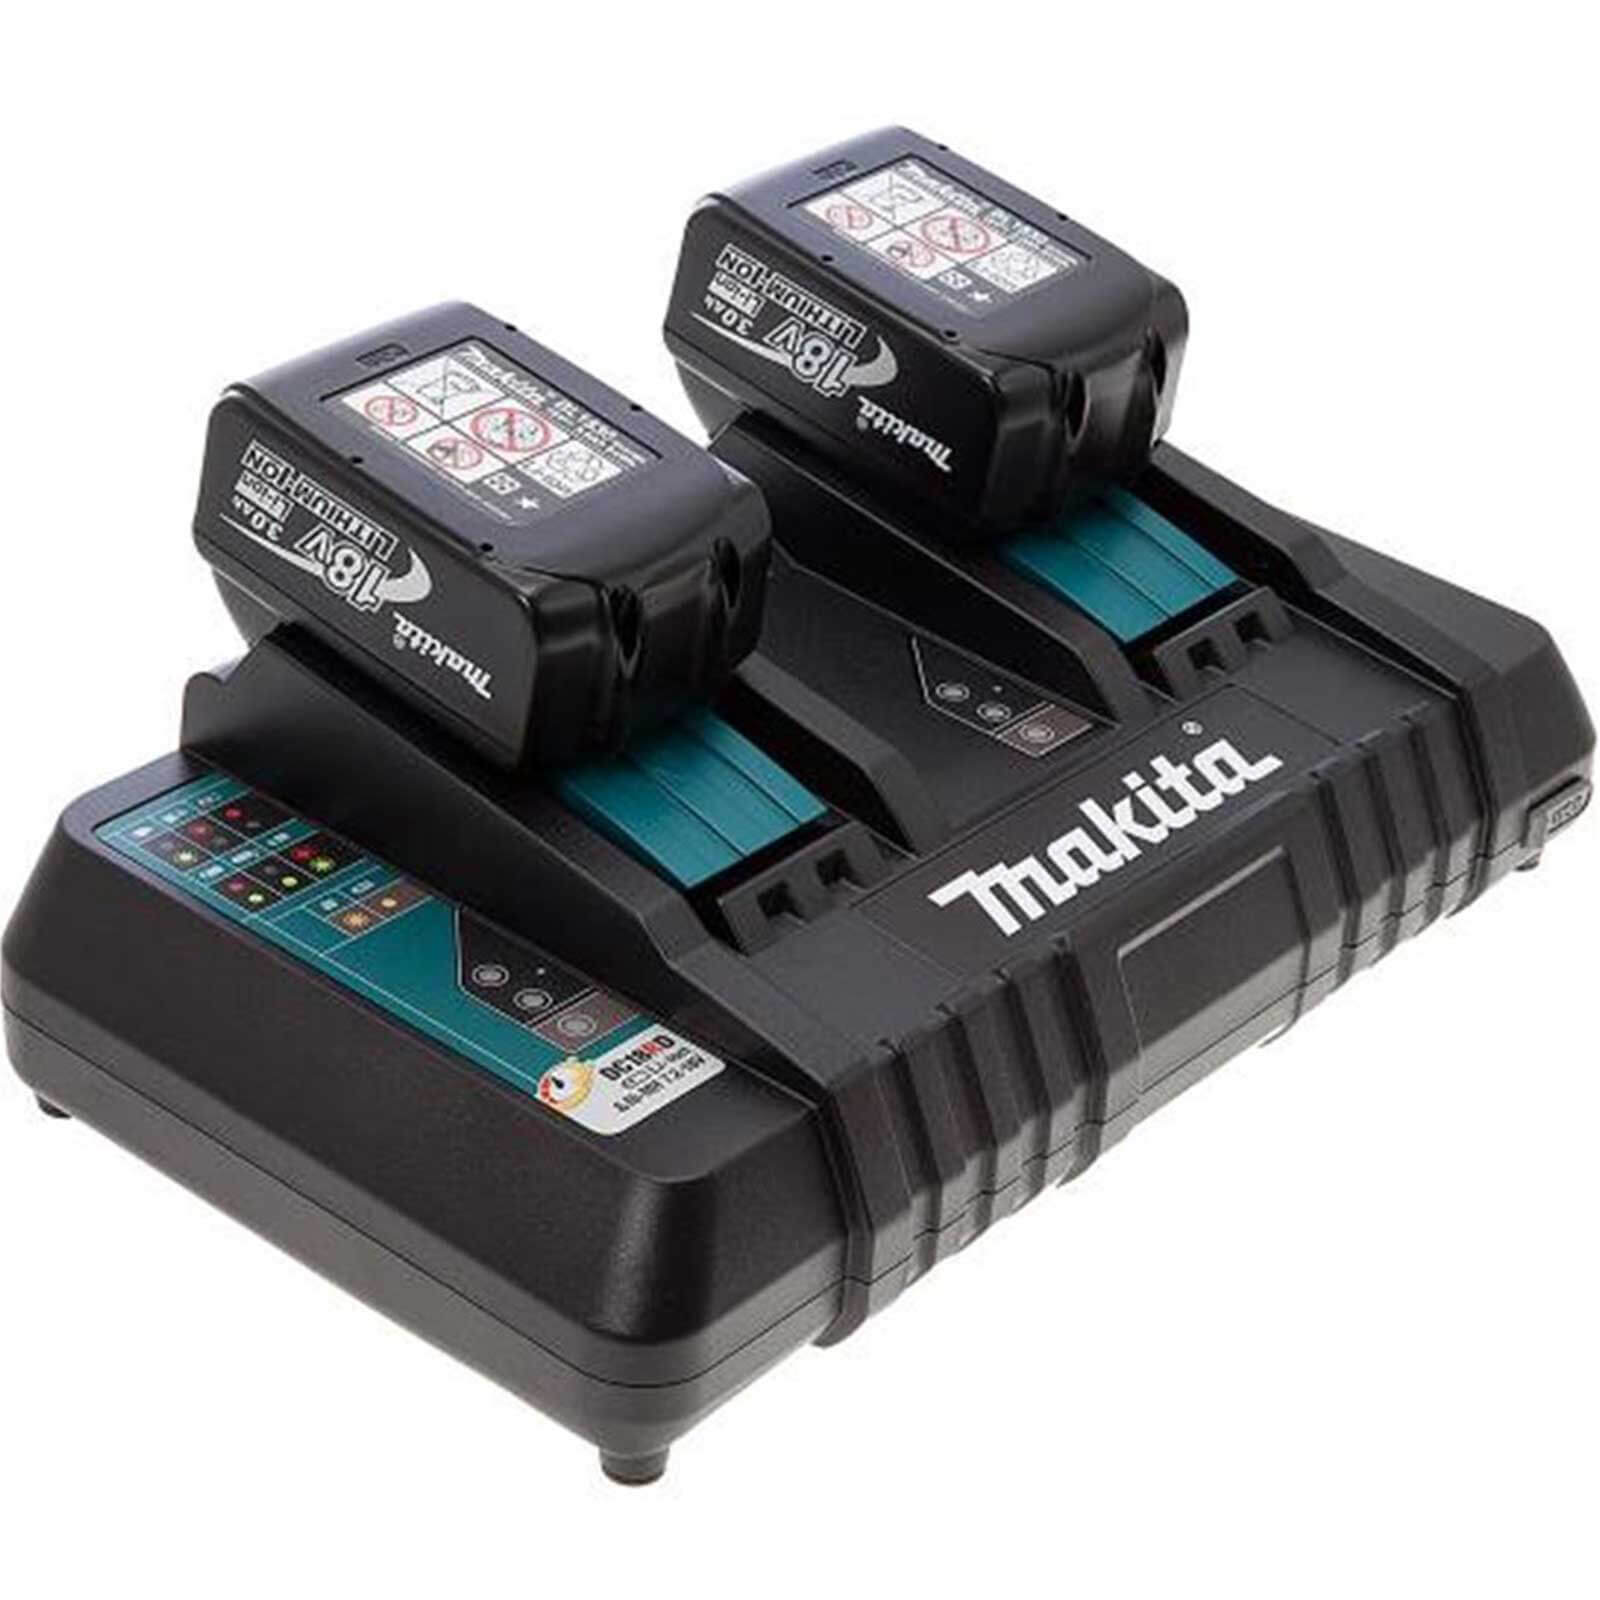 Image of Makita 18v Twin Charger and 2 Li-ion Batteries 3 Amp